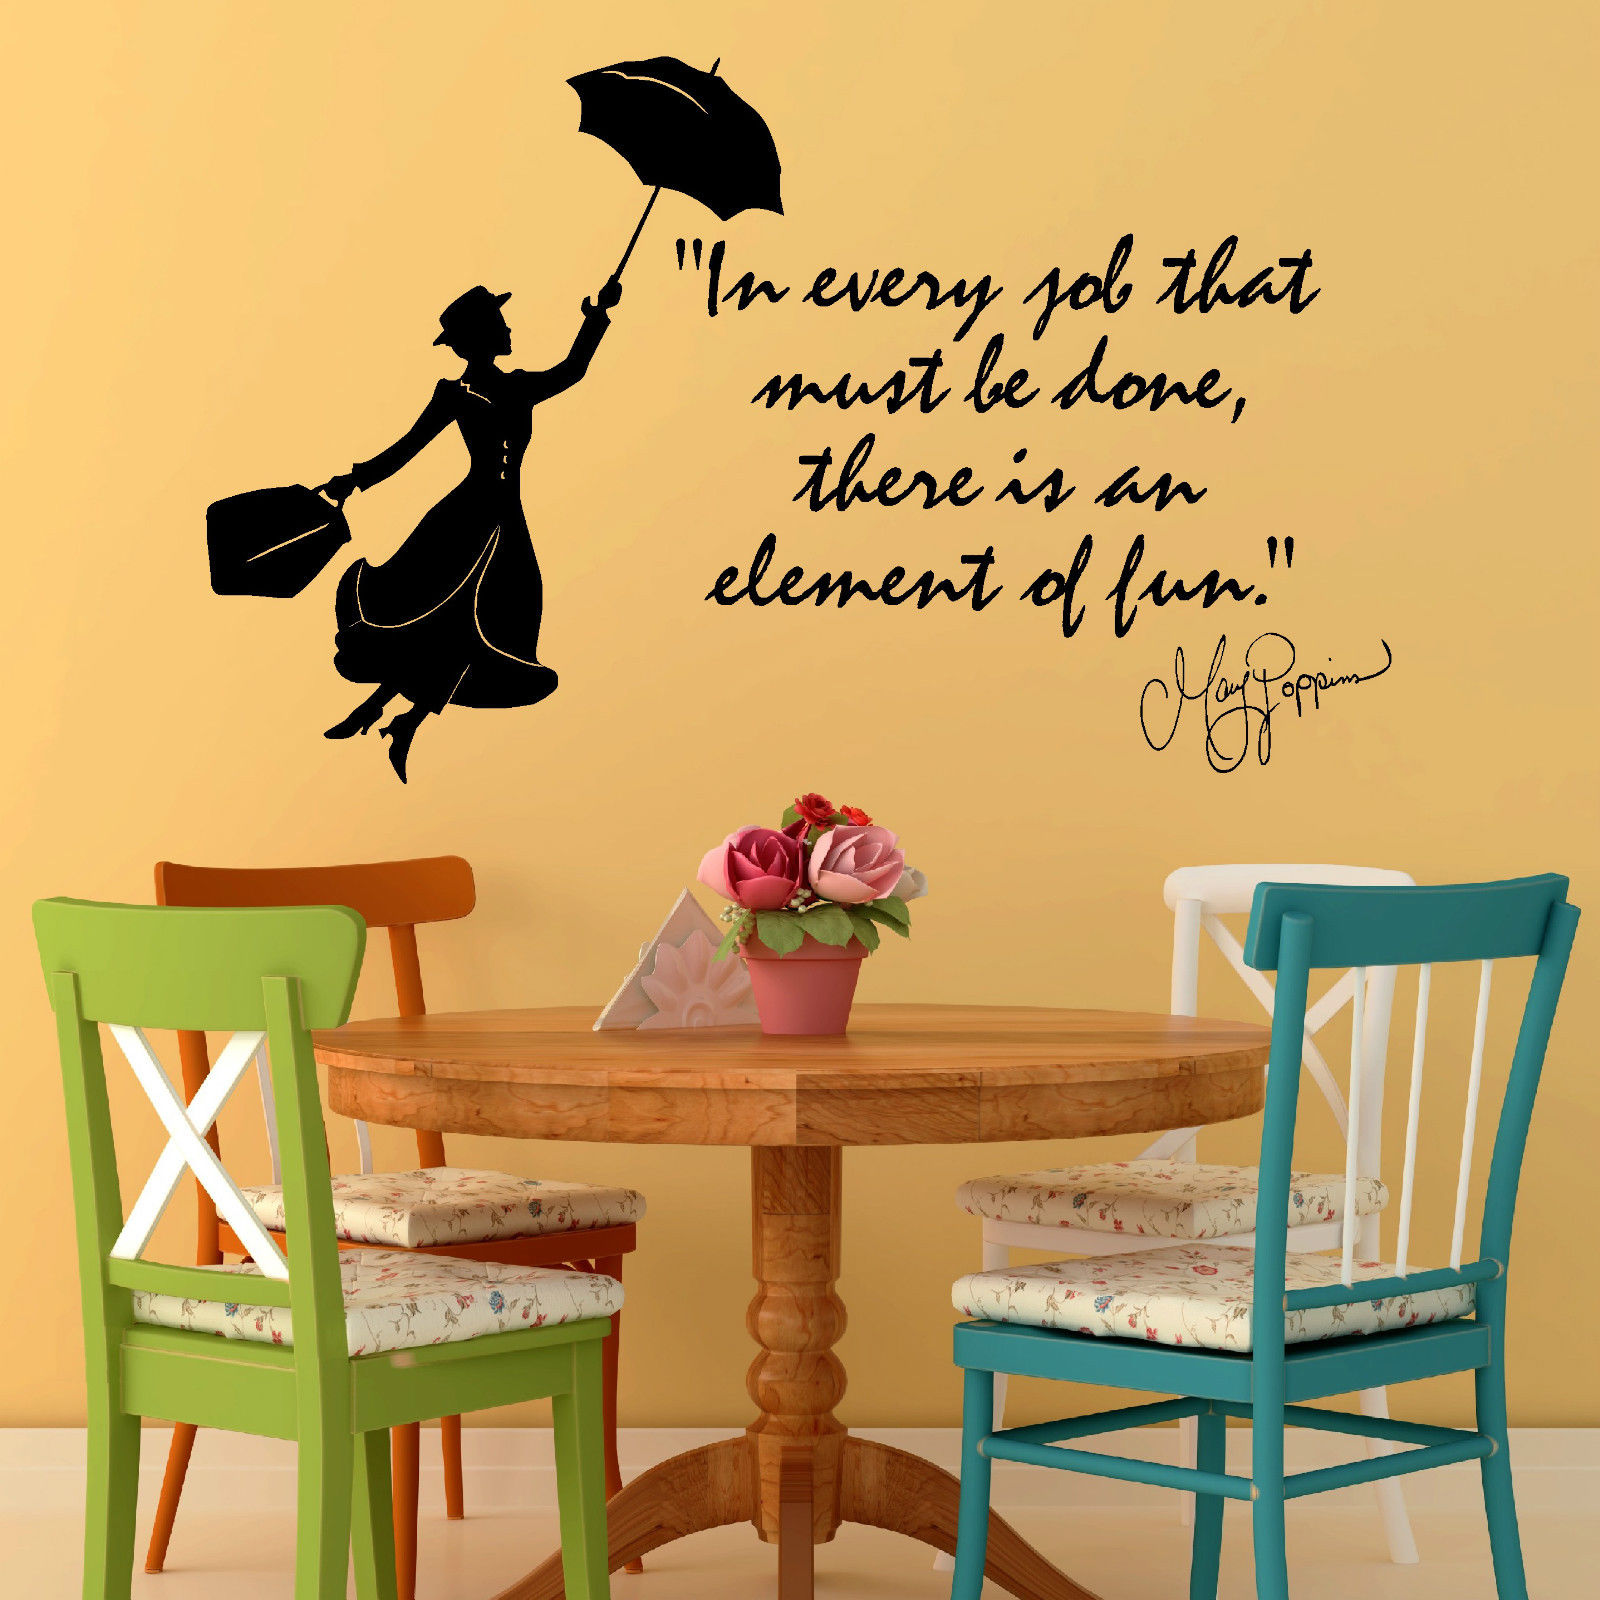 Bedroom wall art quotes - G143 Mary Poppins Julie Andrews In Every Job That Vinyl Wall Art Quote Decal Sticker Girl Bedroom Wall Stickers Art